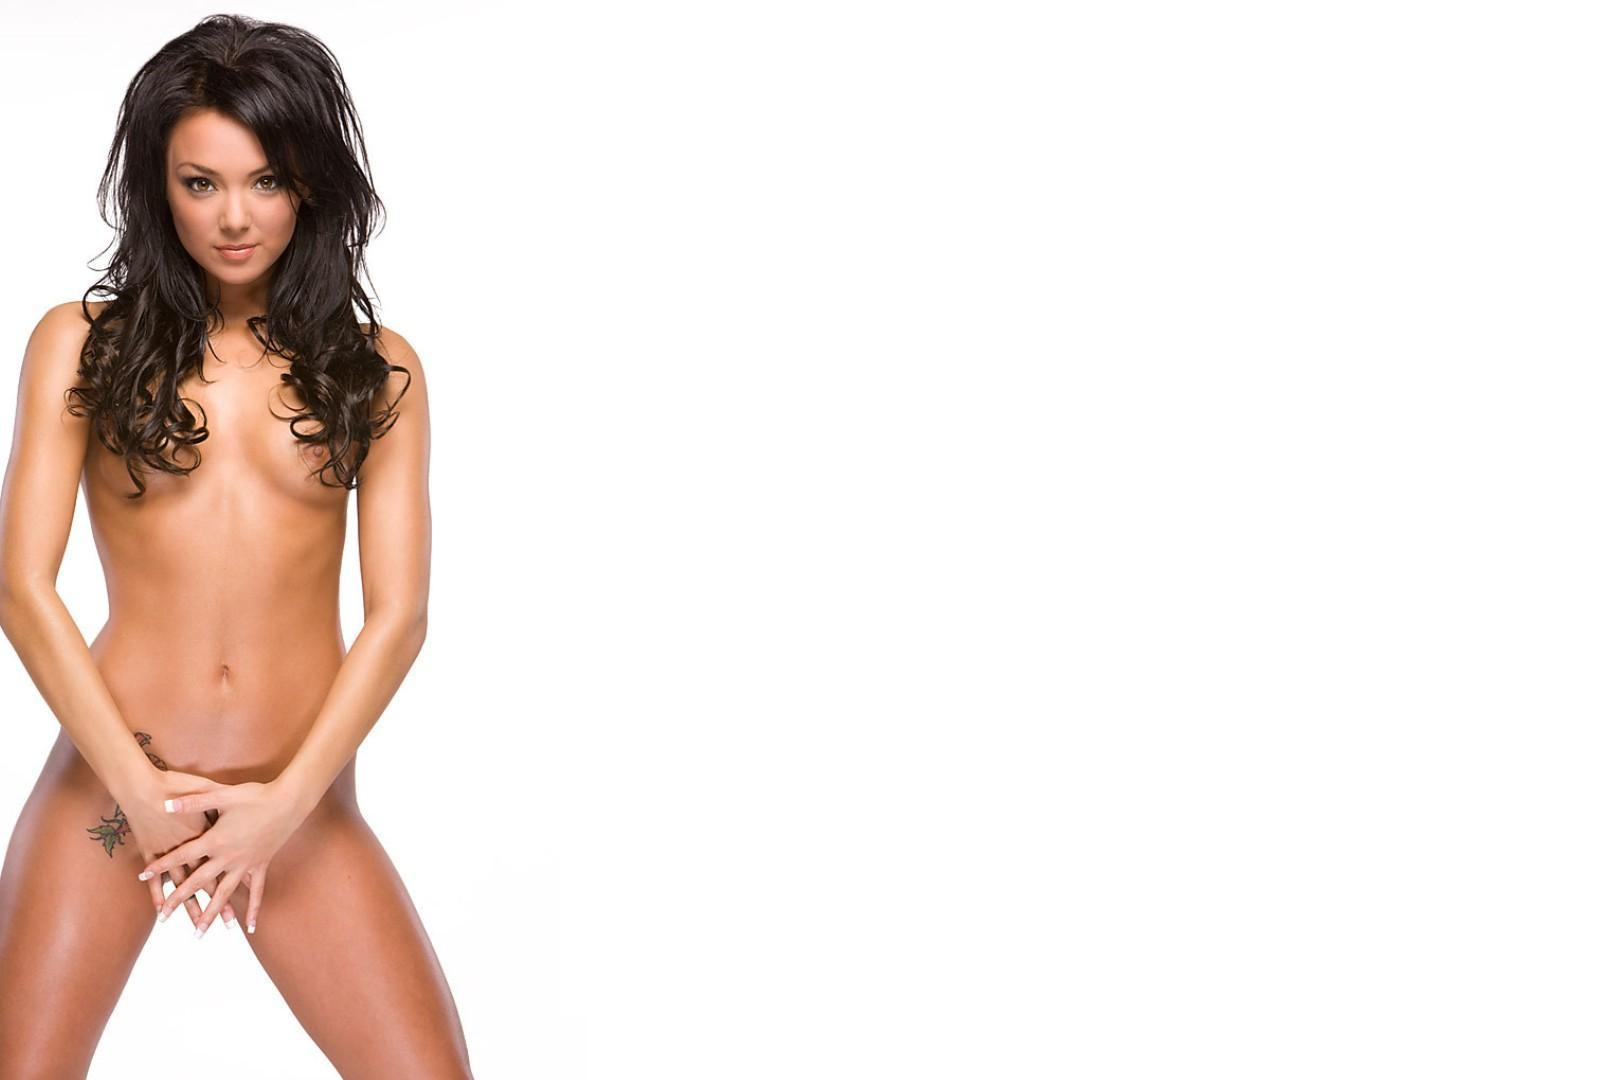 Download photo 1600x1200, lana tailor, boobs, model, nude ...